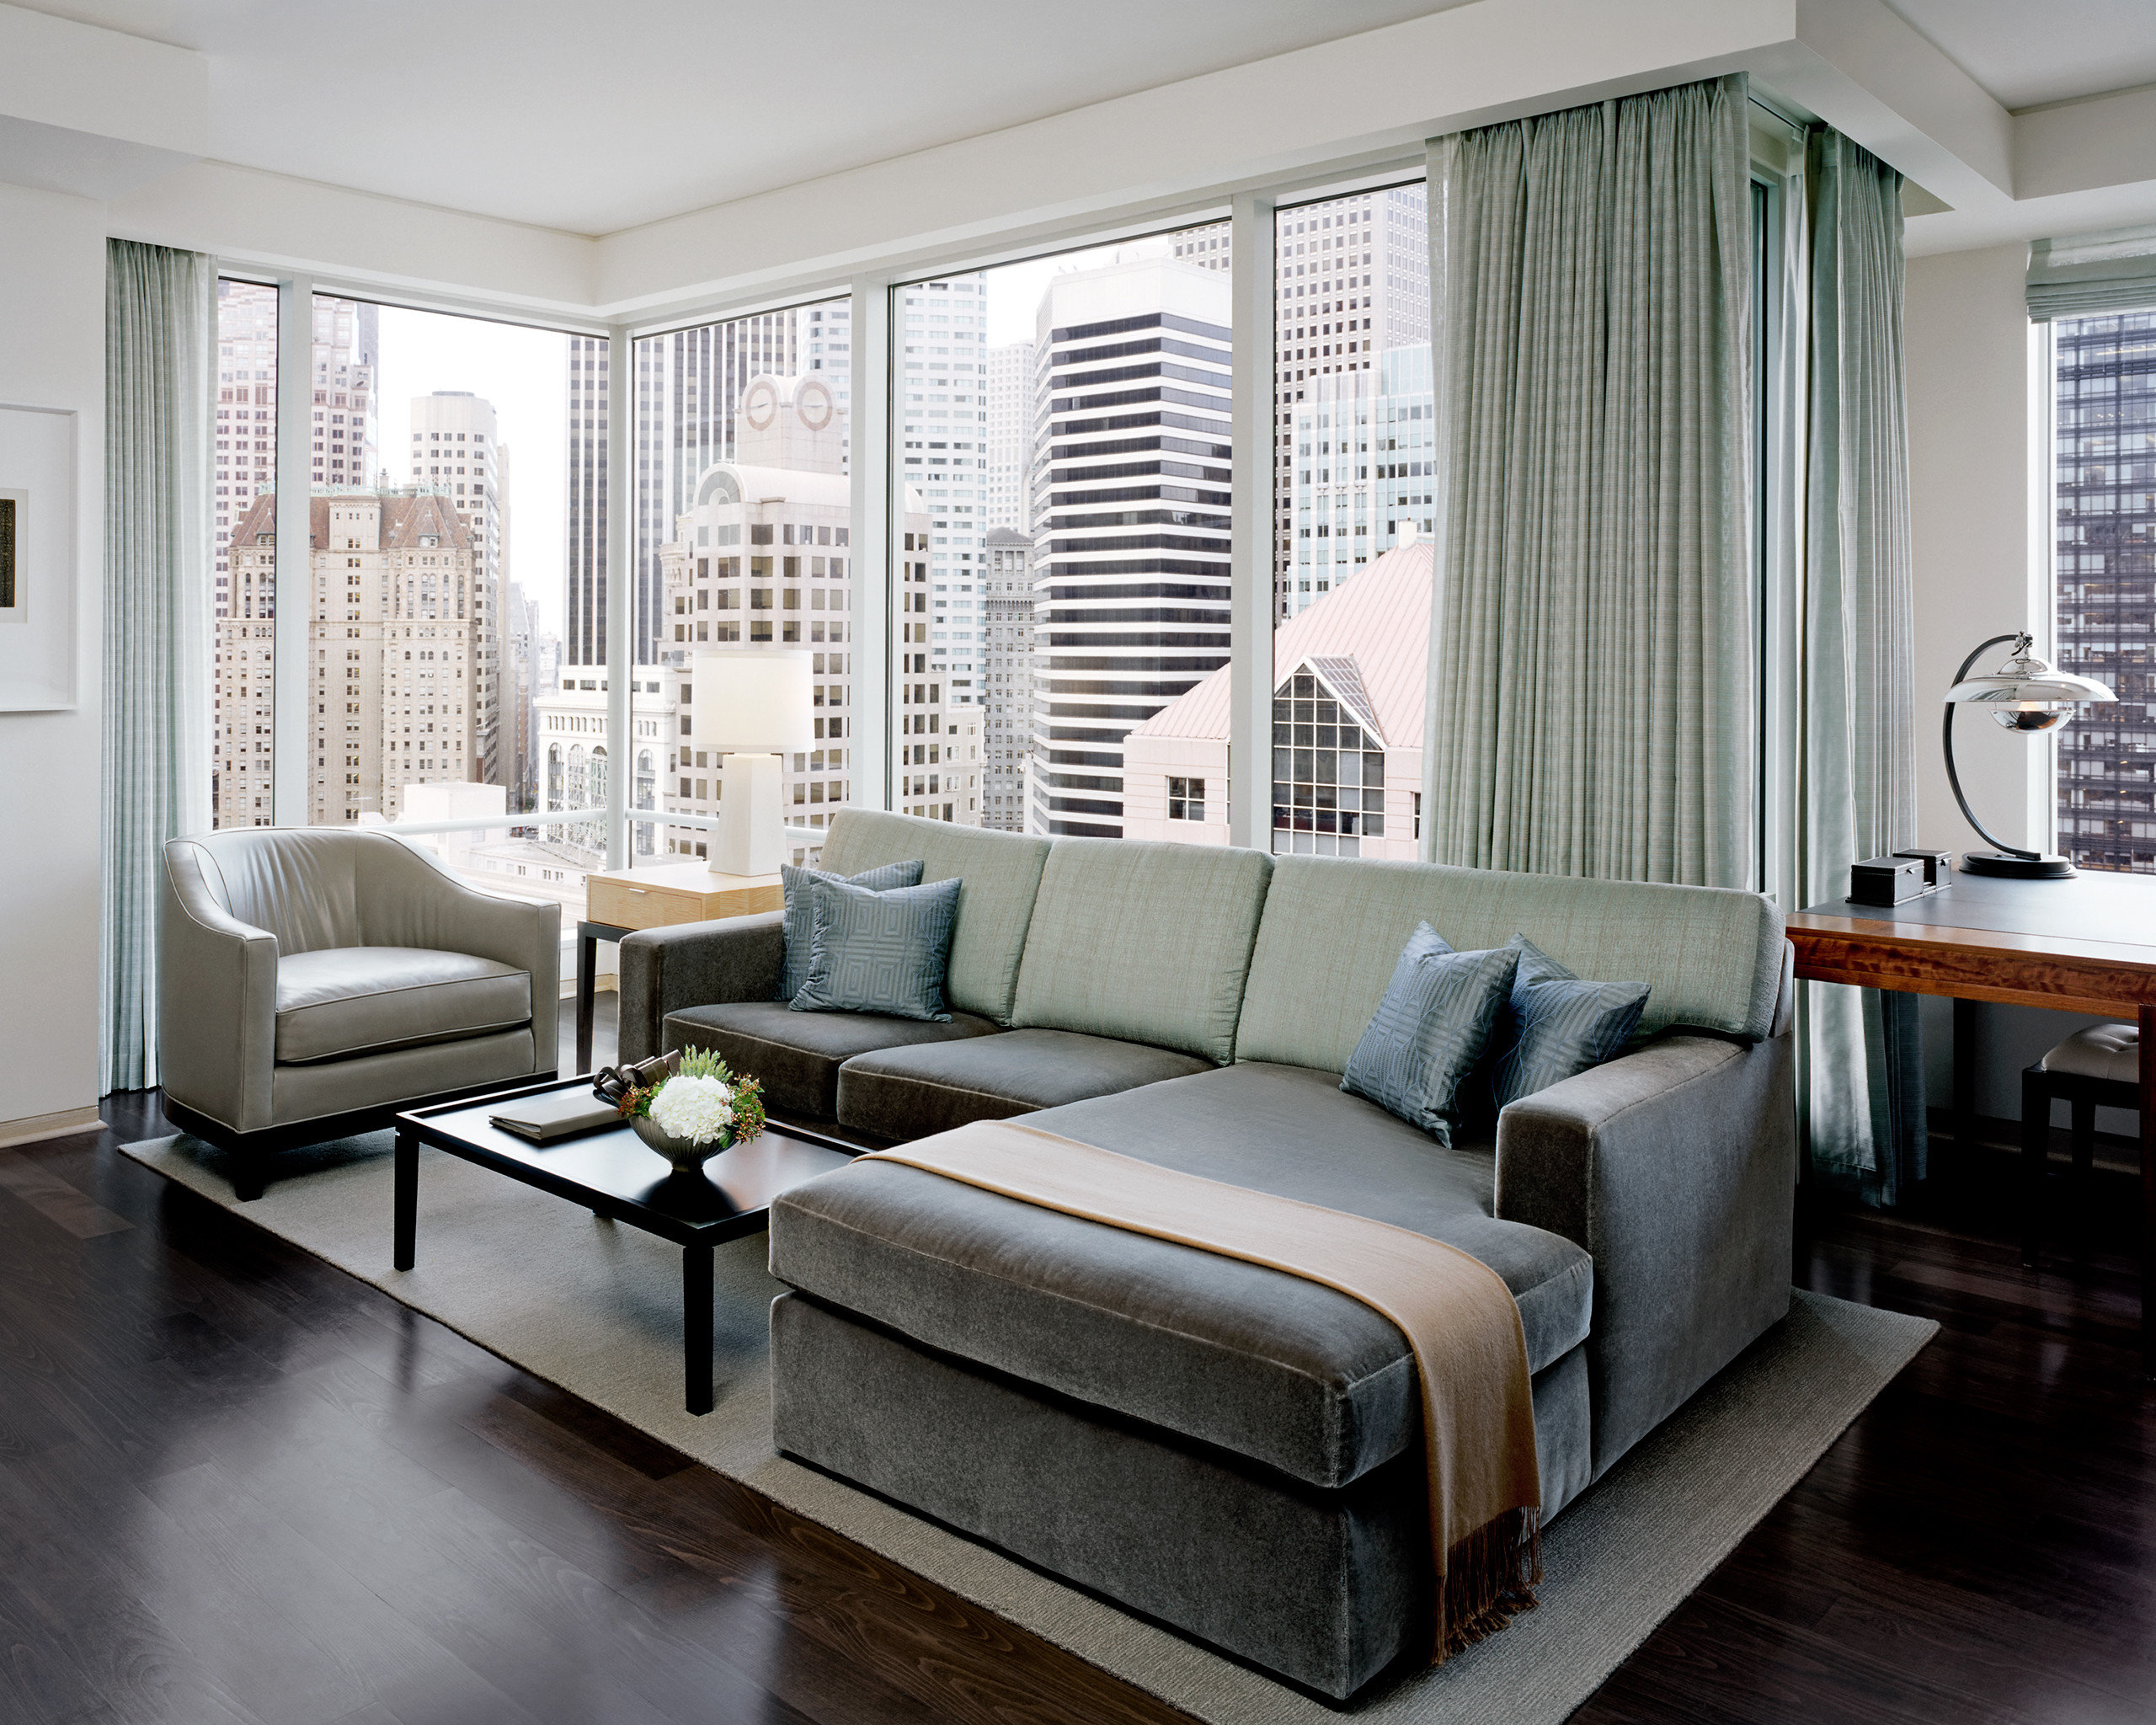 City Elegant Lounge Modern Scenic views sofa living room property Bedroom home hardwood condominium bed frame